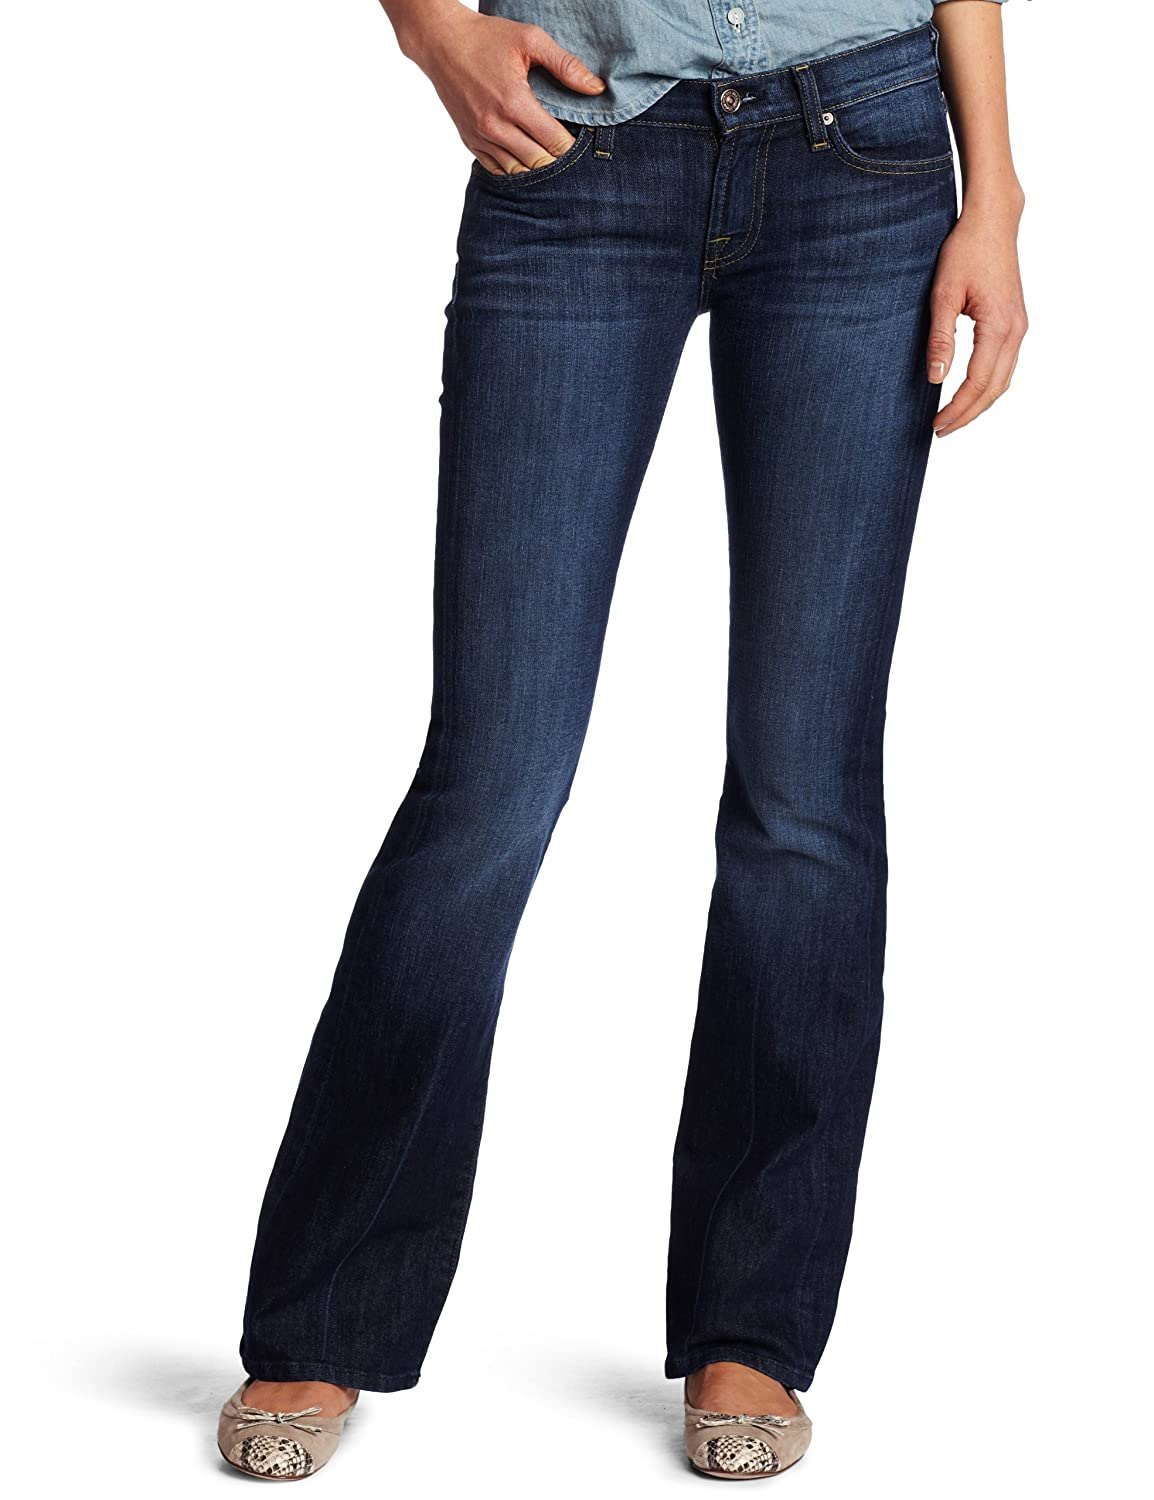 Outlet Professional 7 For All Mankind Woman Roll Up Straight High-rise Slim-leg Jeans Dark Denim Size 25 7 For All Mankind Websites Sale Online Clearance Classic Cheapest Price Online Buy Cheap Factory Outlet K3XYamr